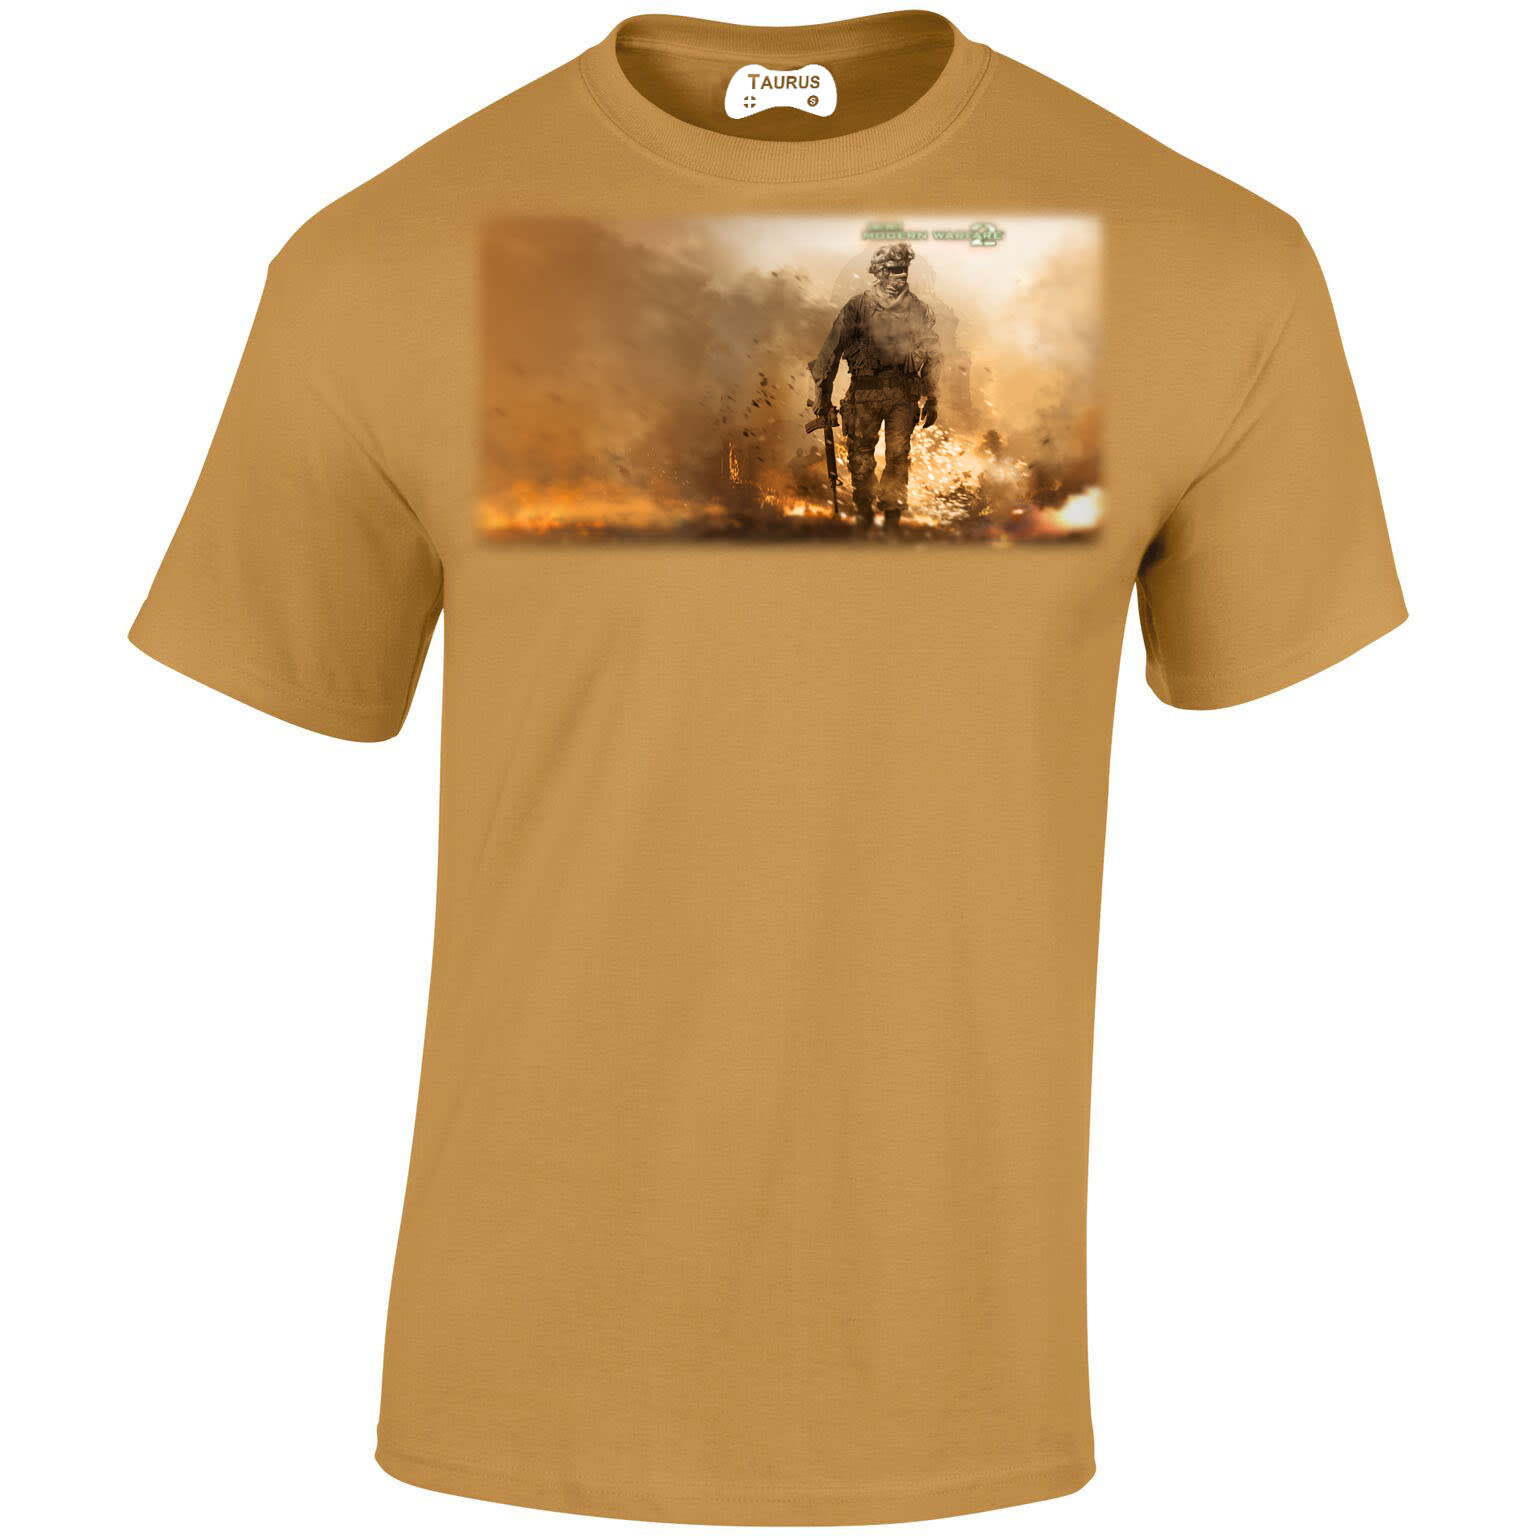 Call Of Duty Modern Warfare 2 T-Shirt